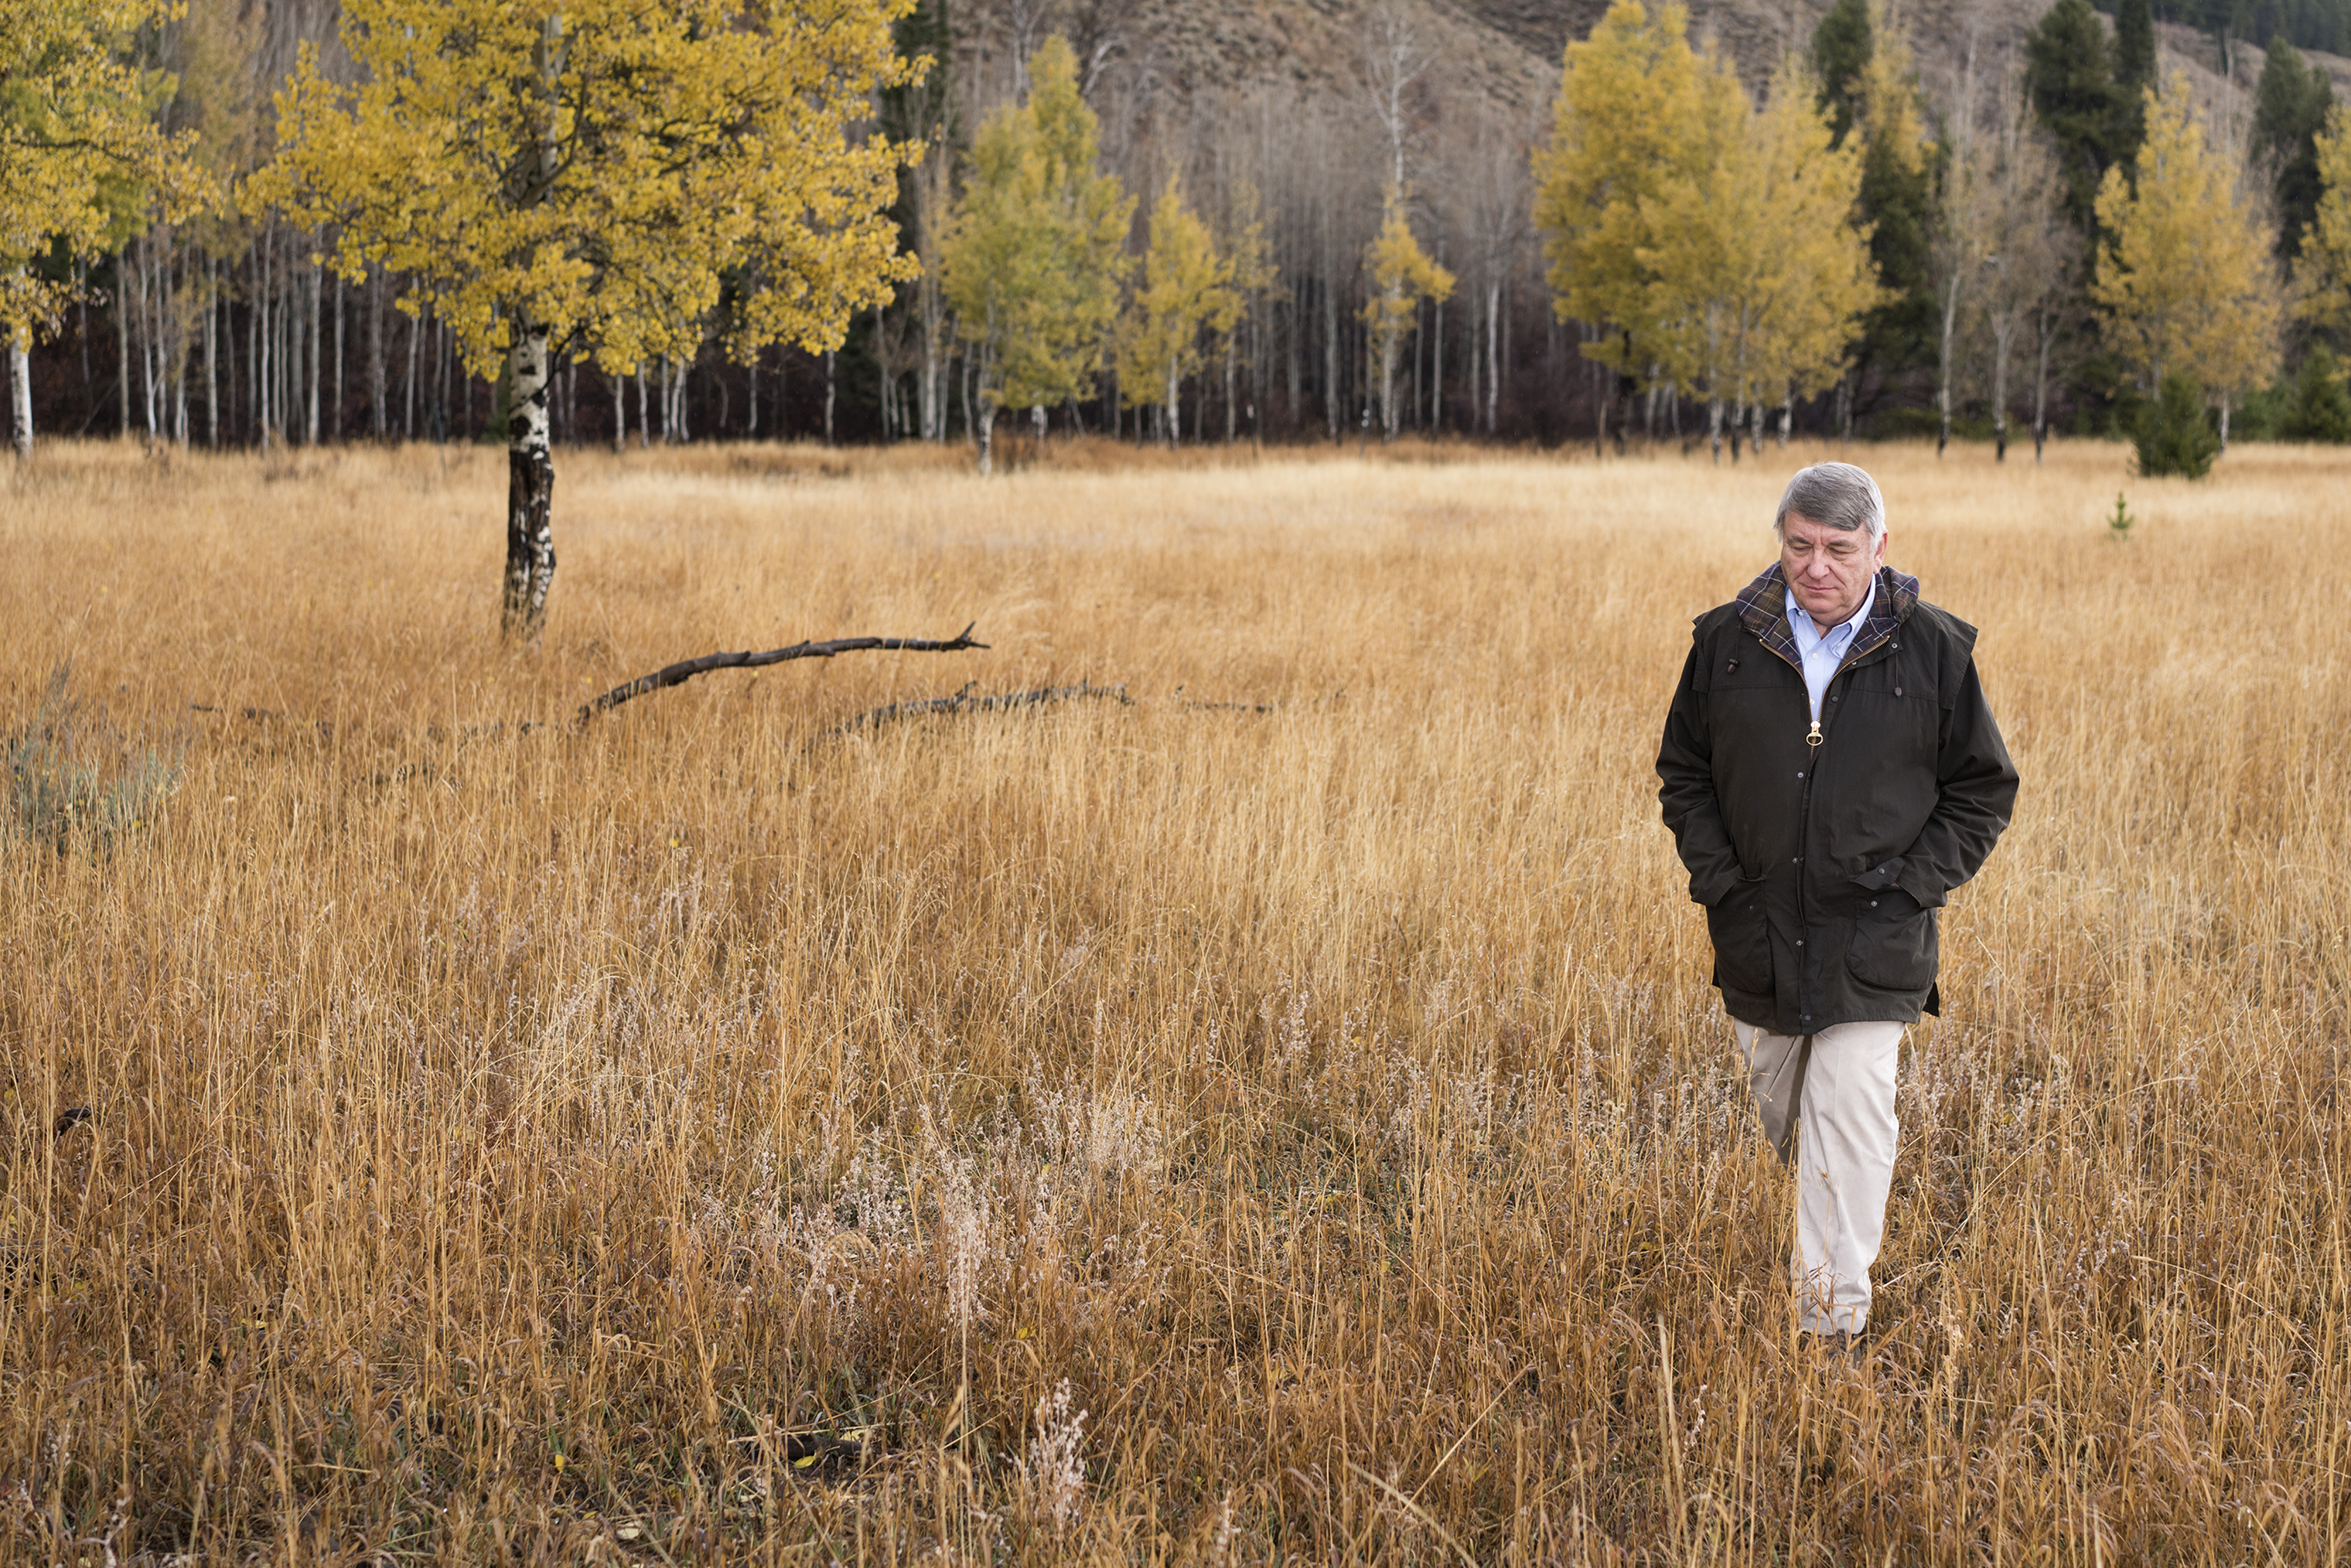 Dr. Paul Cox poses for a portrait at Grand Teton National Park near Jackson Hole, Wyoming on October 24, 2018.